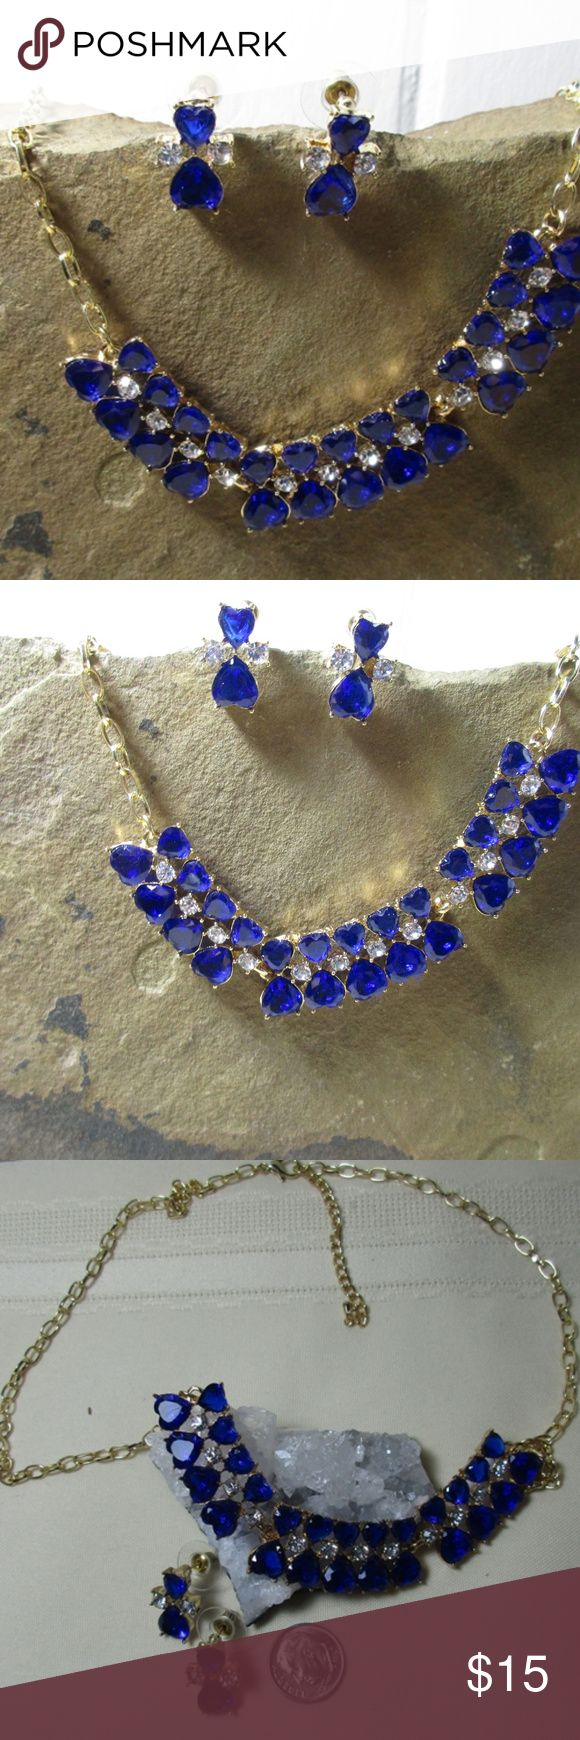 Blue CZ double heart necklace & earrings set Blue CZ double heart necklace & earrings set , 18 inch chain with 2 inch extender, yellow gold plated. The hearts are 1 inch from top to bottom and comes with cute matching earrings. This is just a fun set.  See it's smiling at you. Jewelry Necklaces